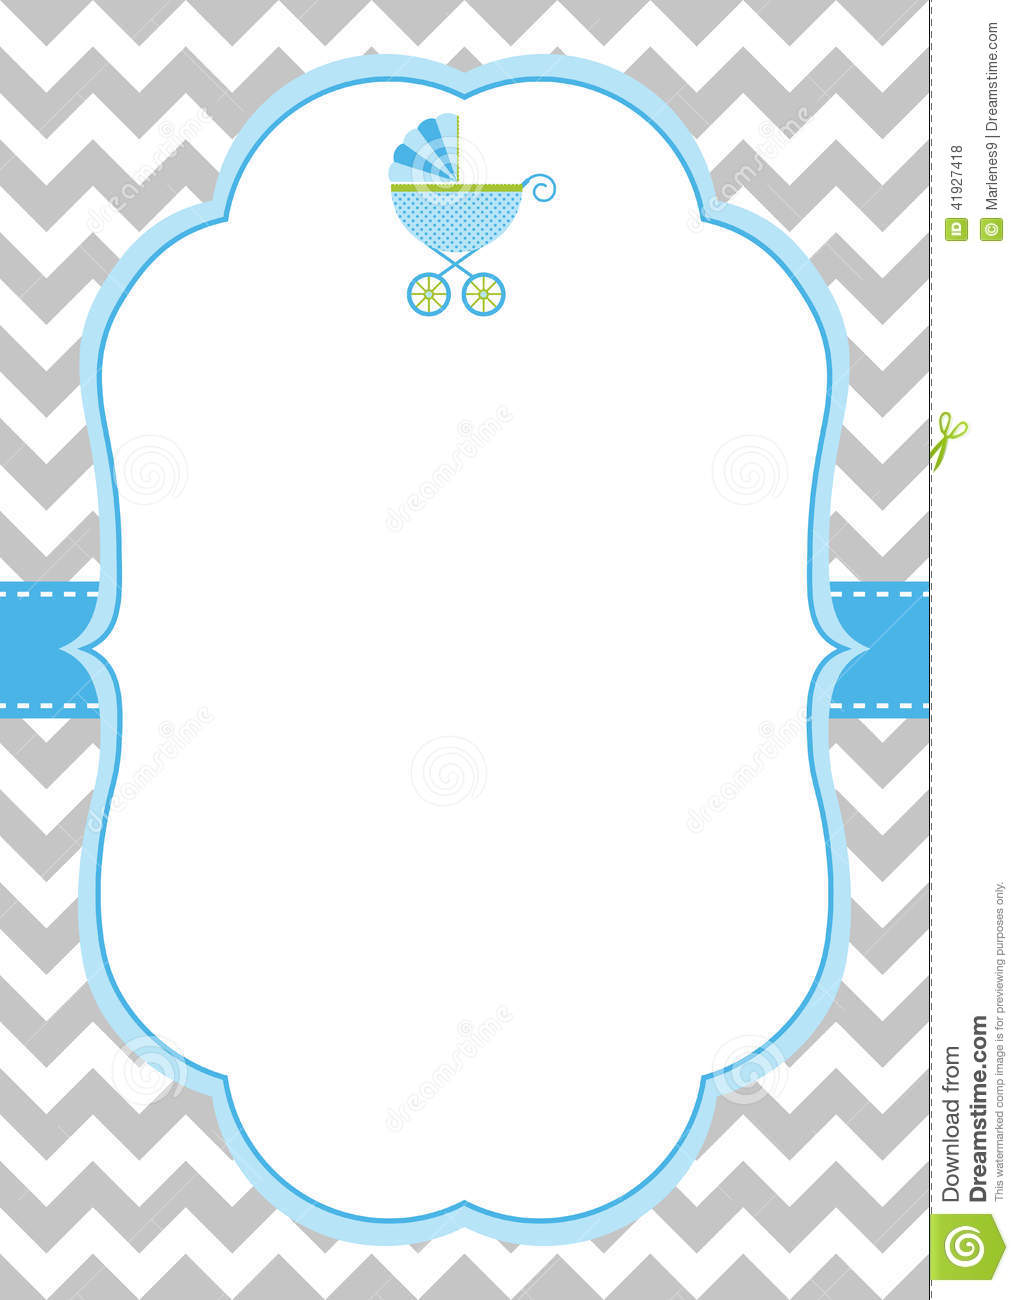 Baby Boy Invitation Card Illustration 41927418 - Megapixl